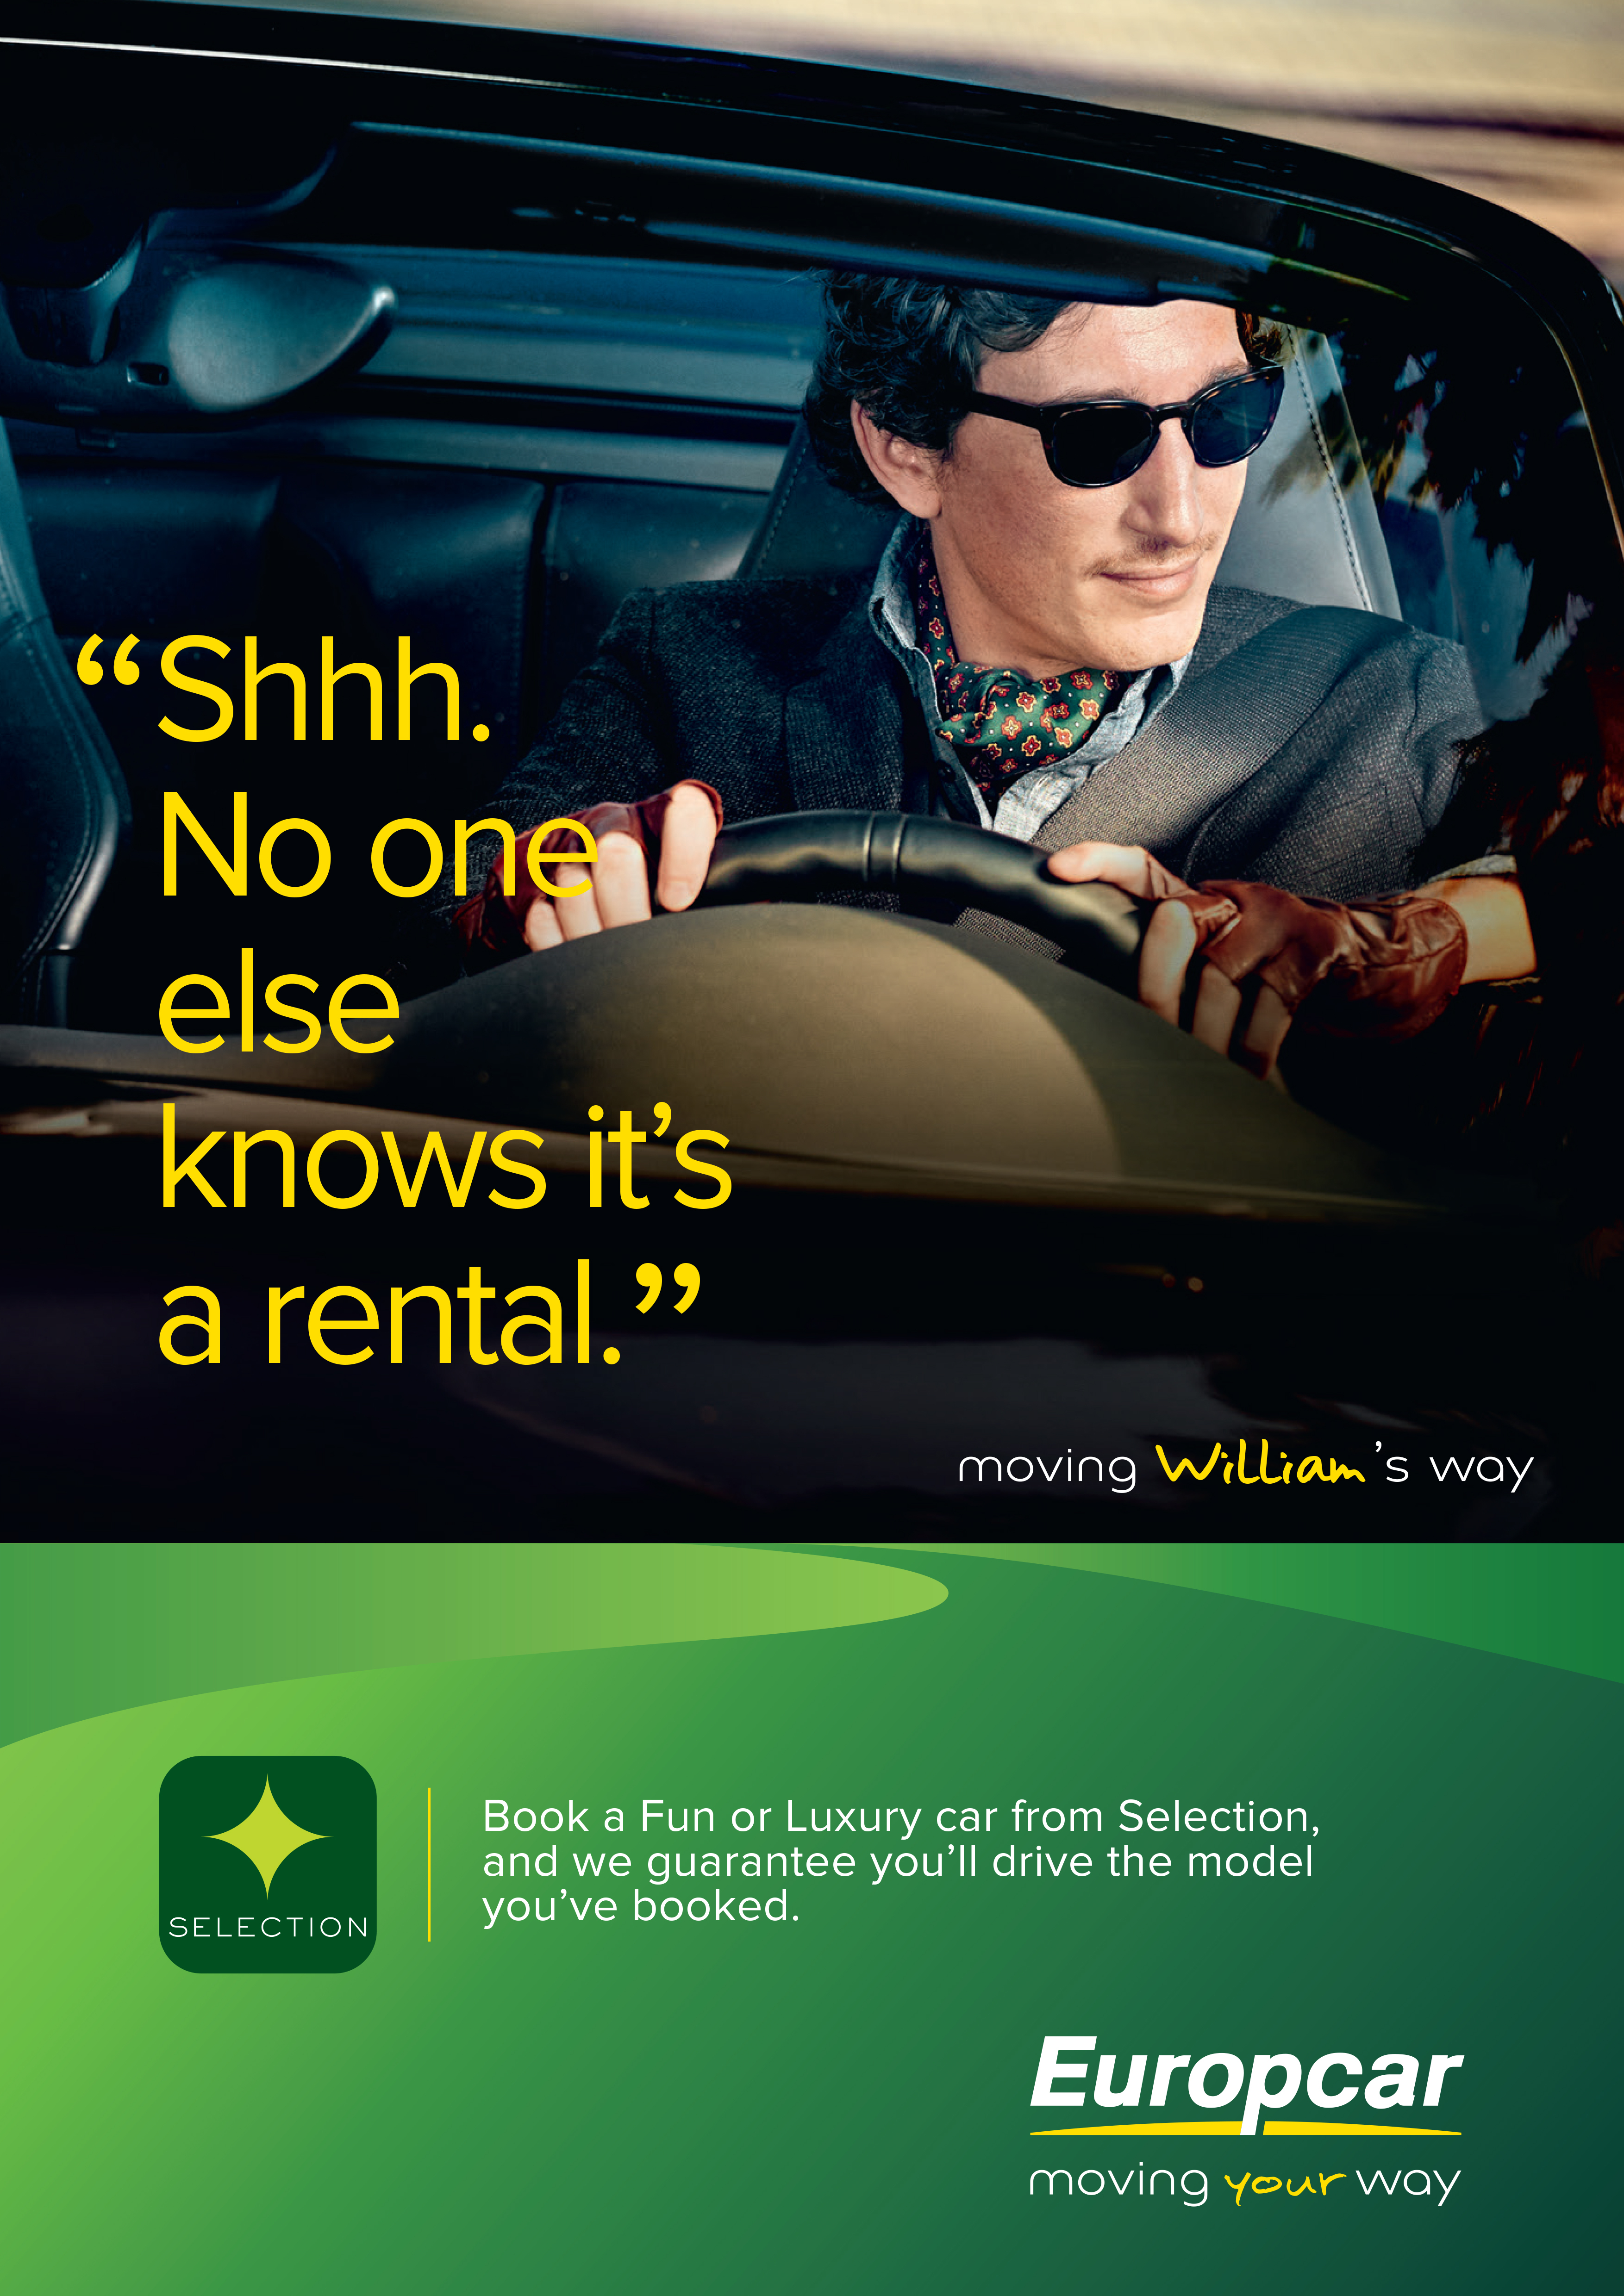 Europcar Puts The Customer At The Heart Of Its New Communications